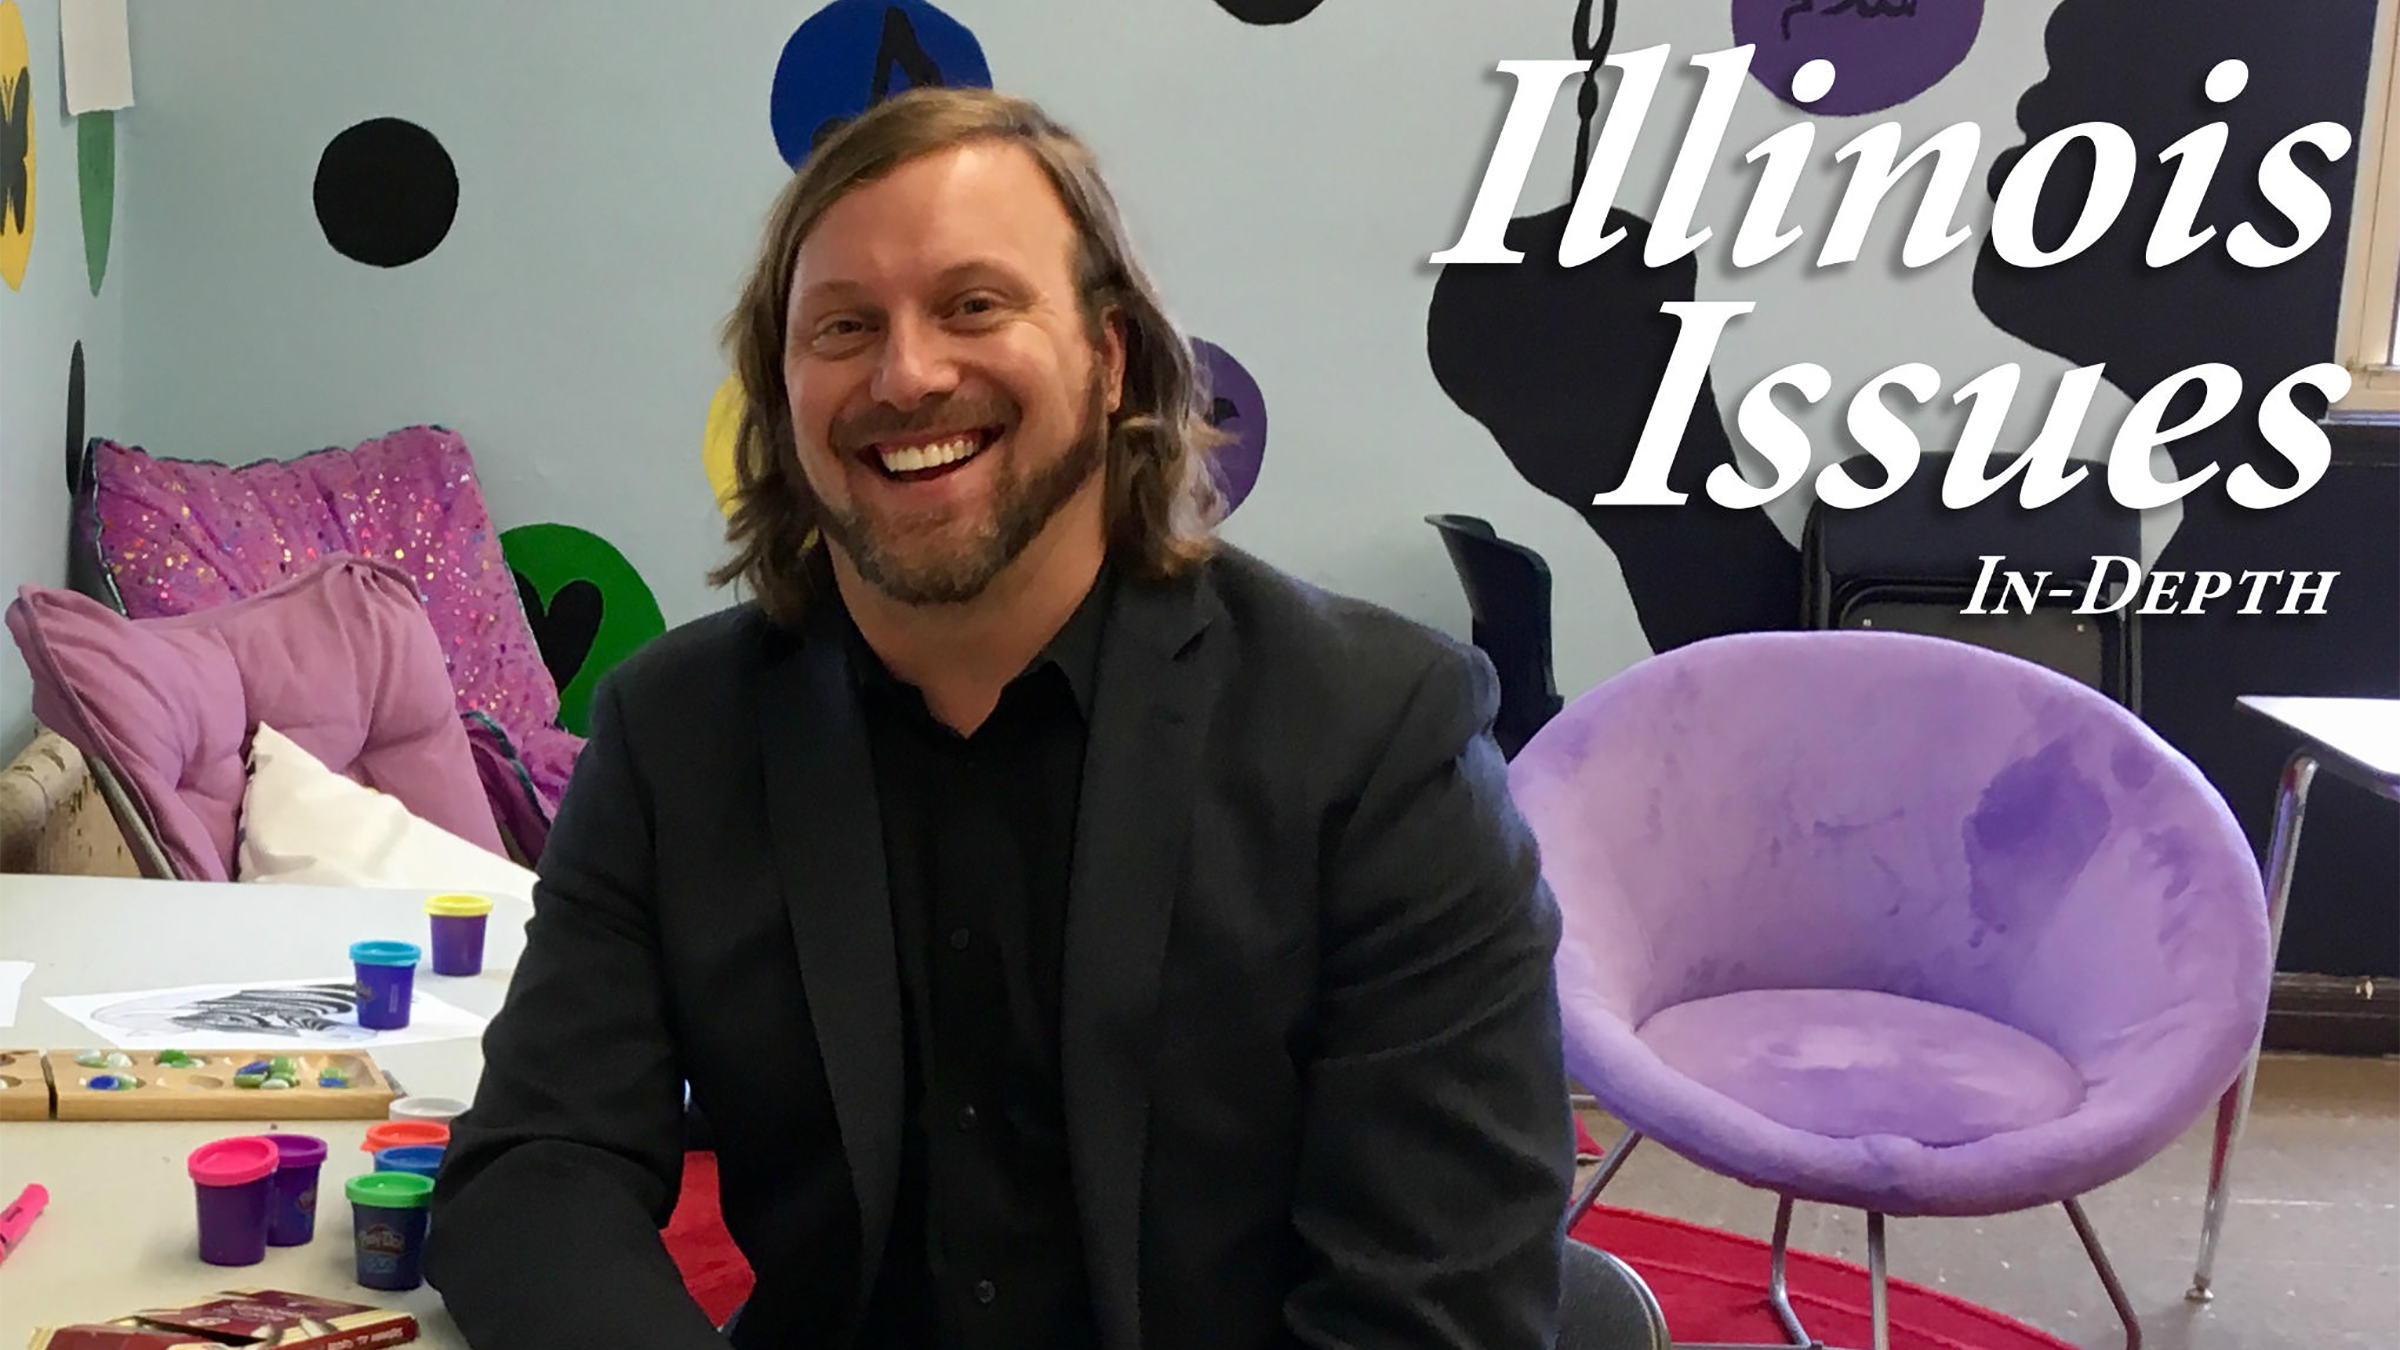 The White Guy Needs Some Dicipline